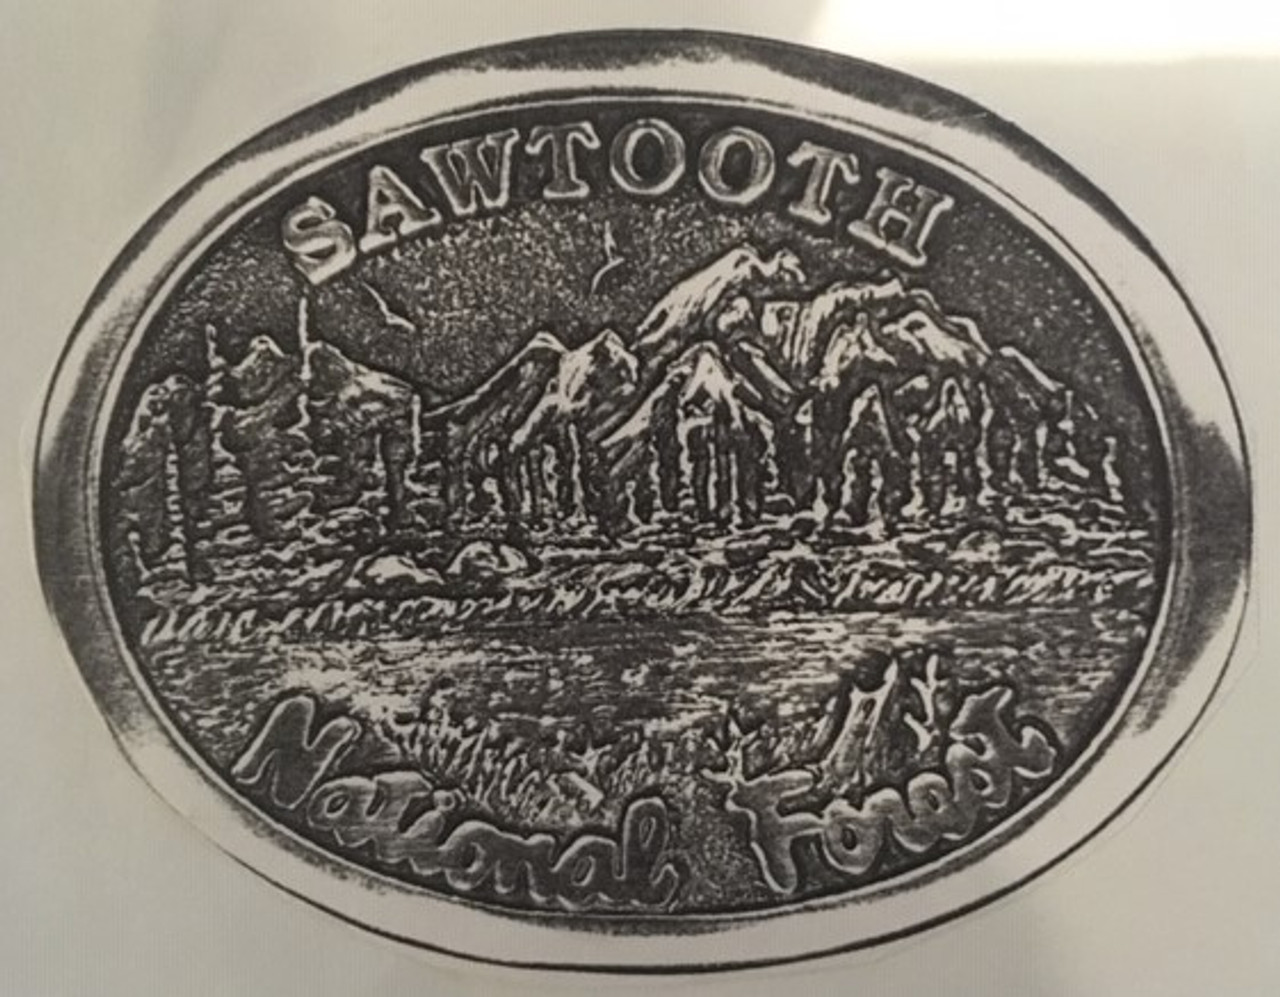 Sawtooth National Forest Buckle